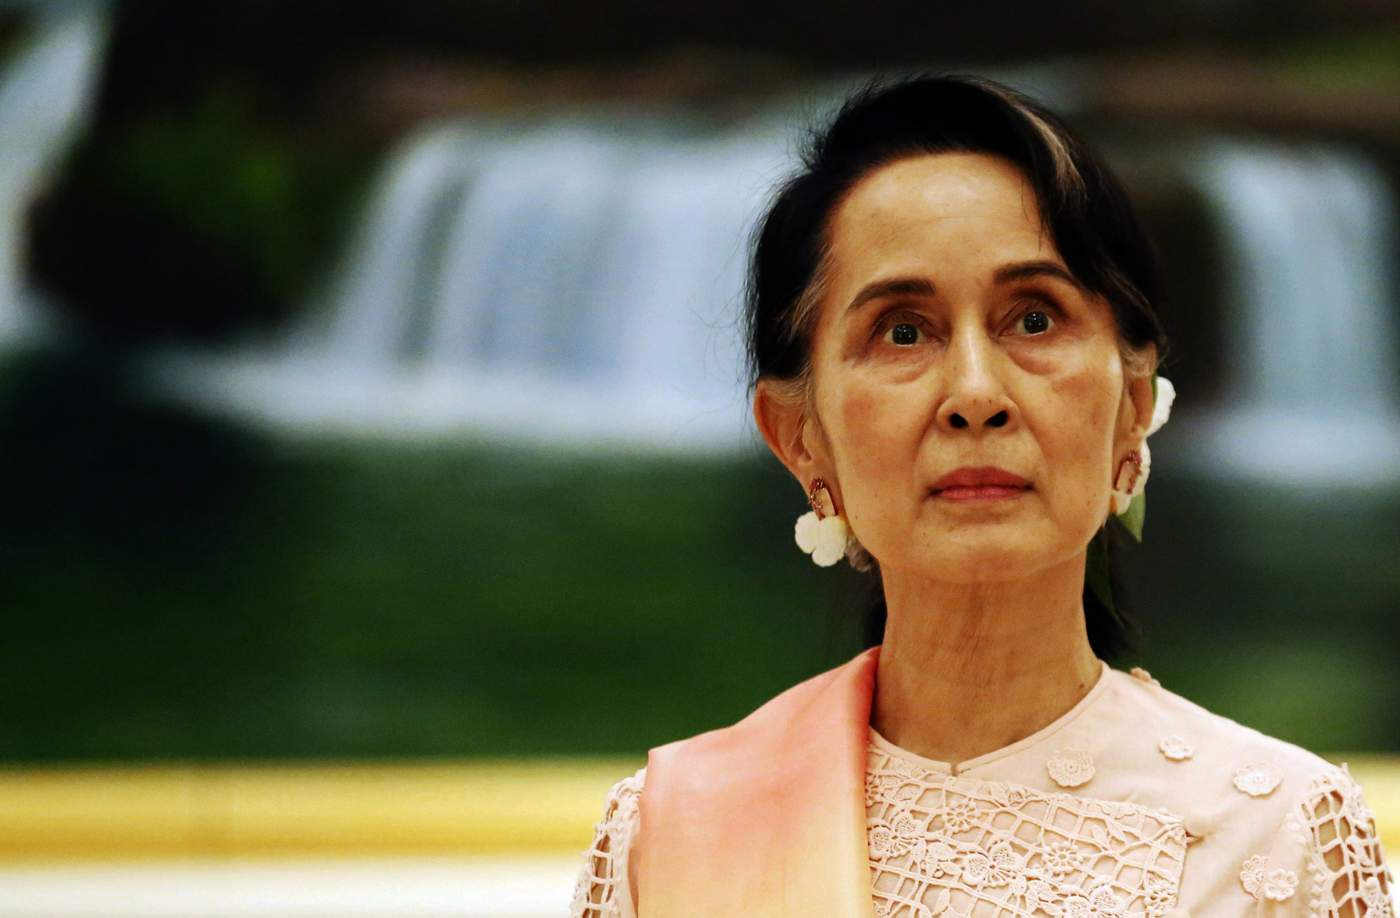 Aung San Suu Kyi Is Stripped of Amnesty's Highest Honor